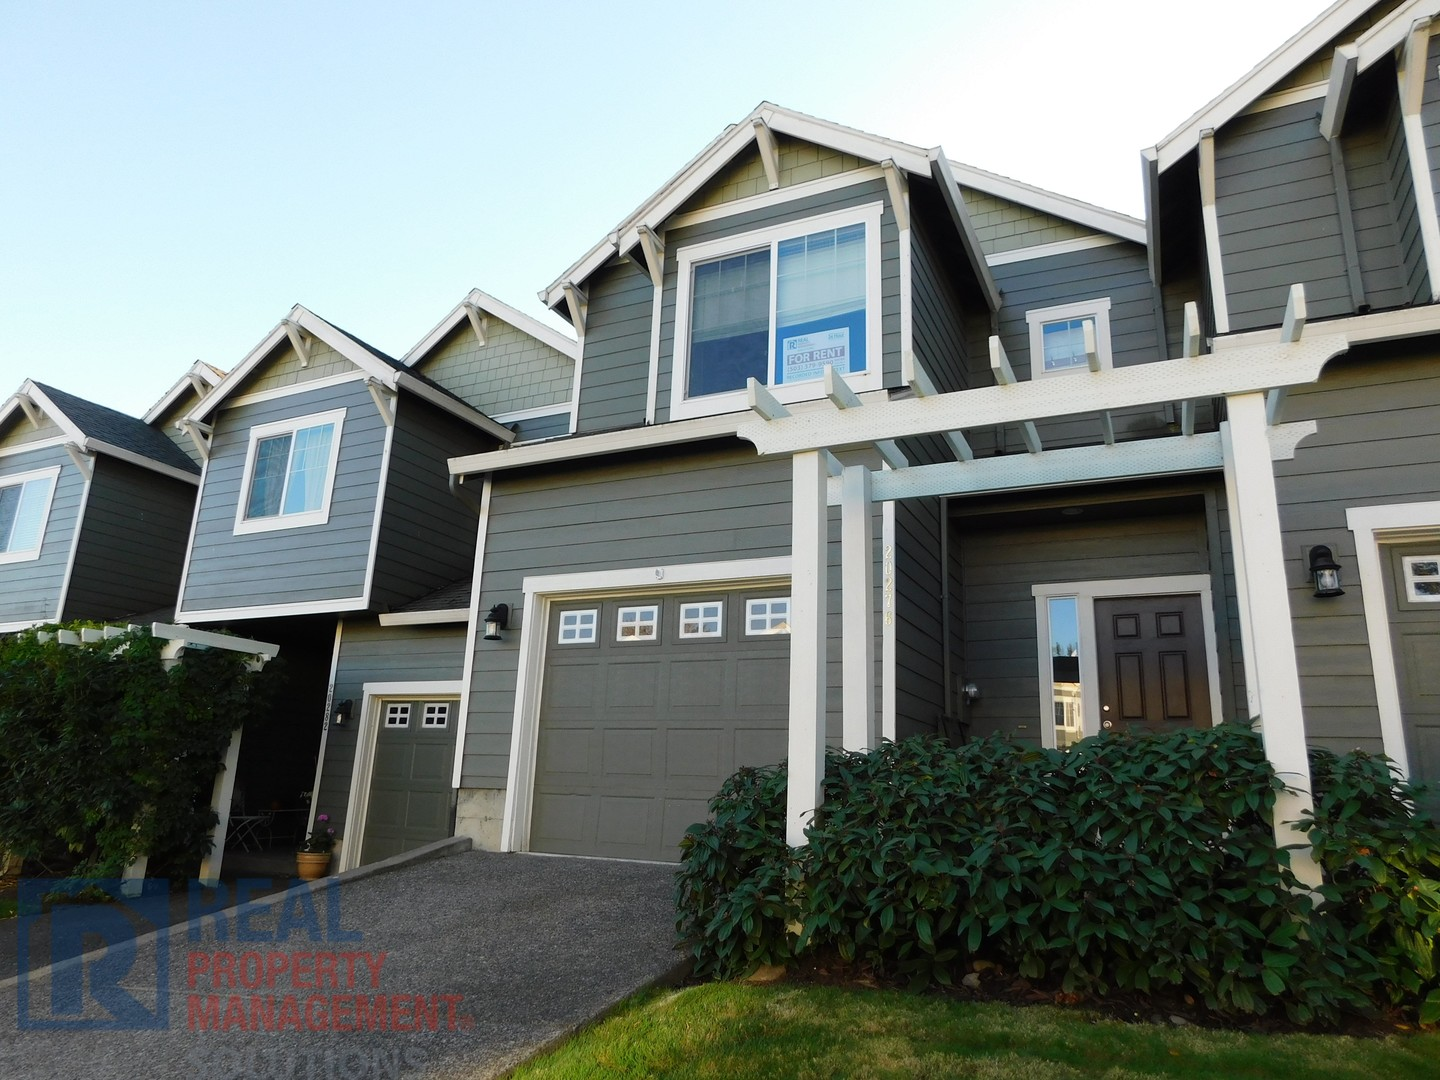 House for Rent in West Linn